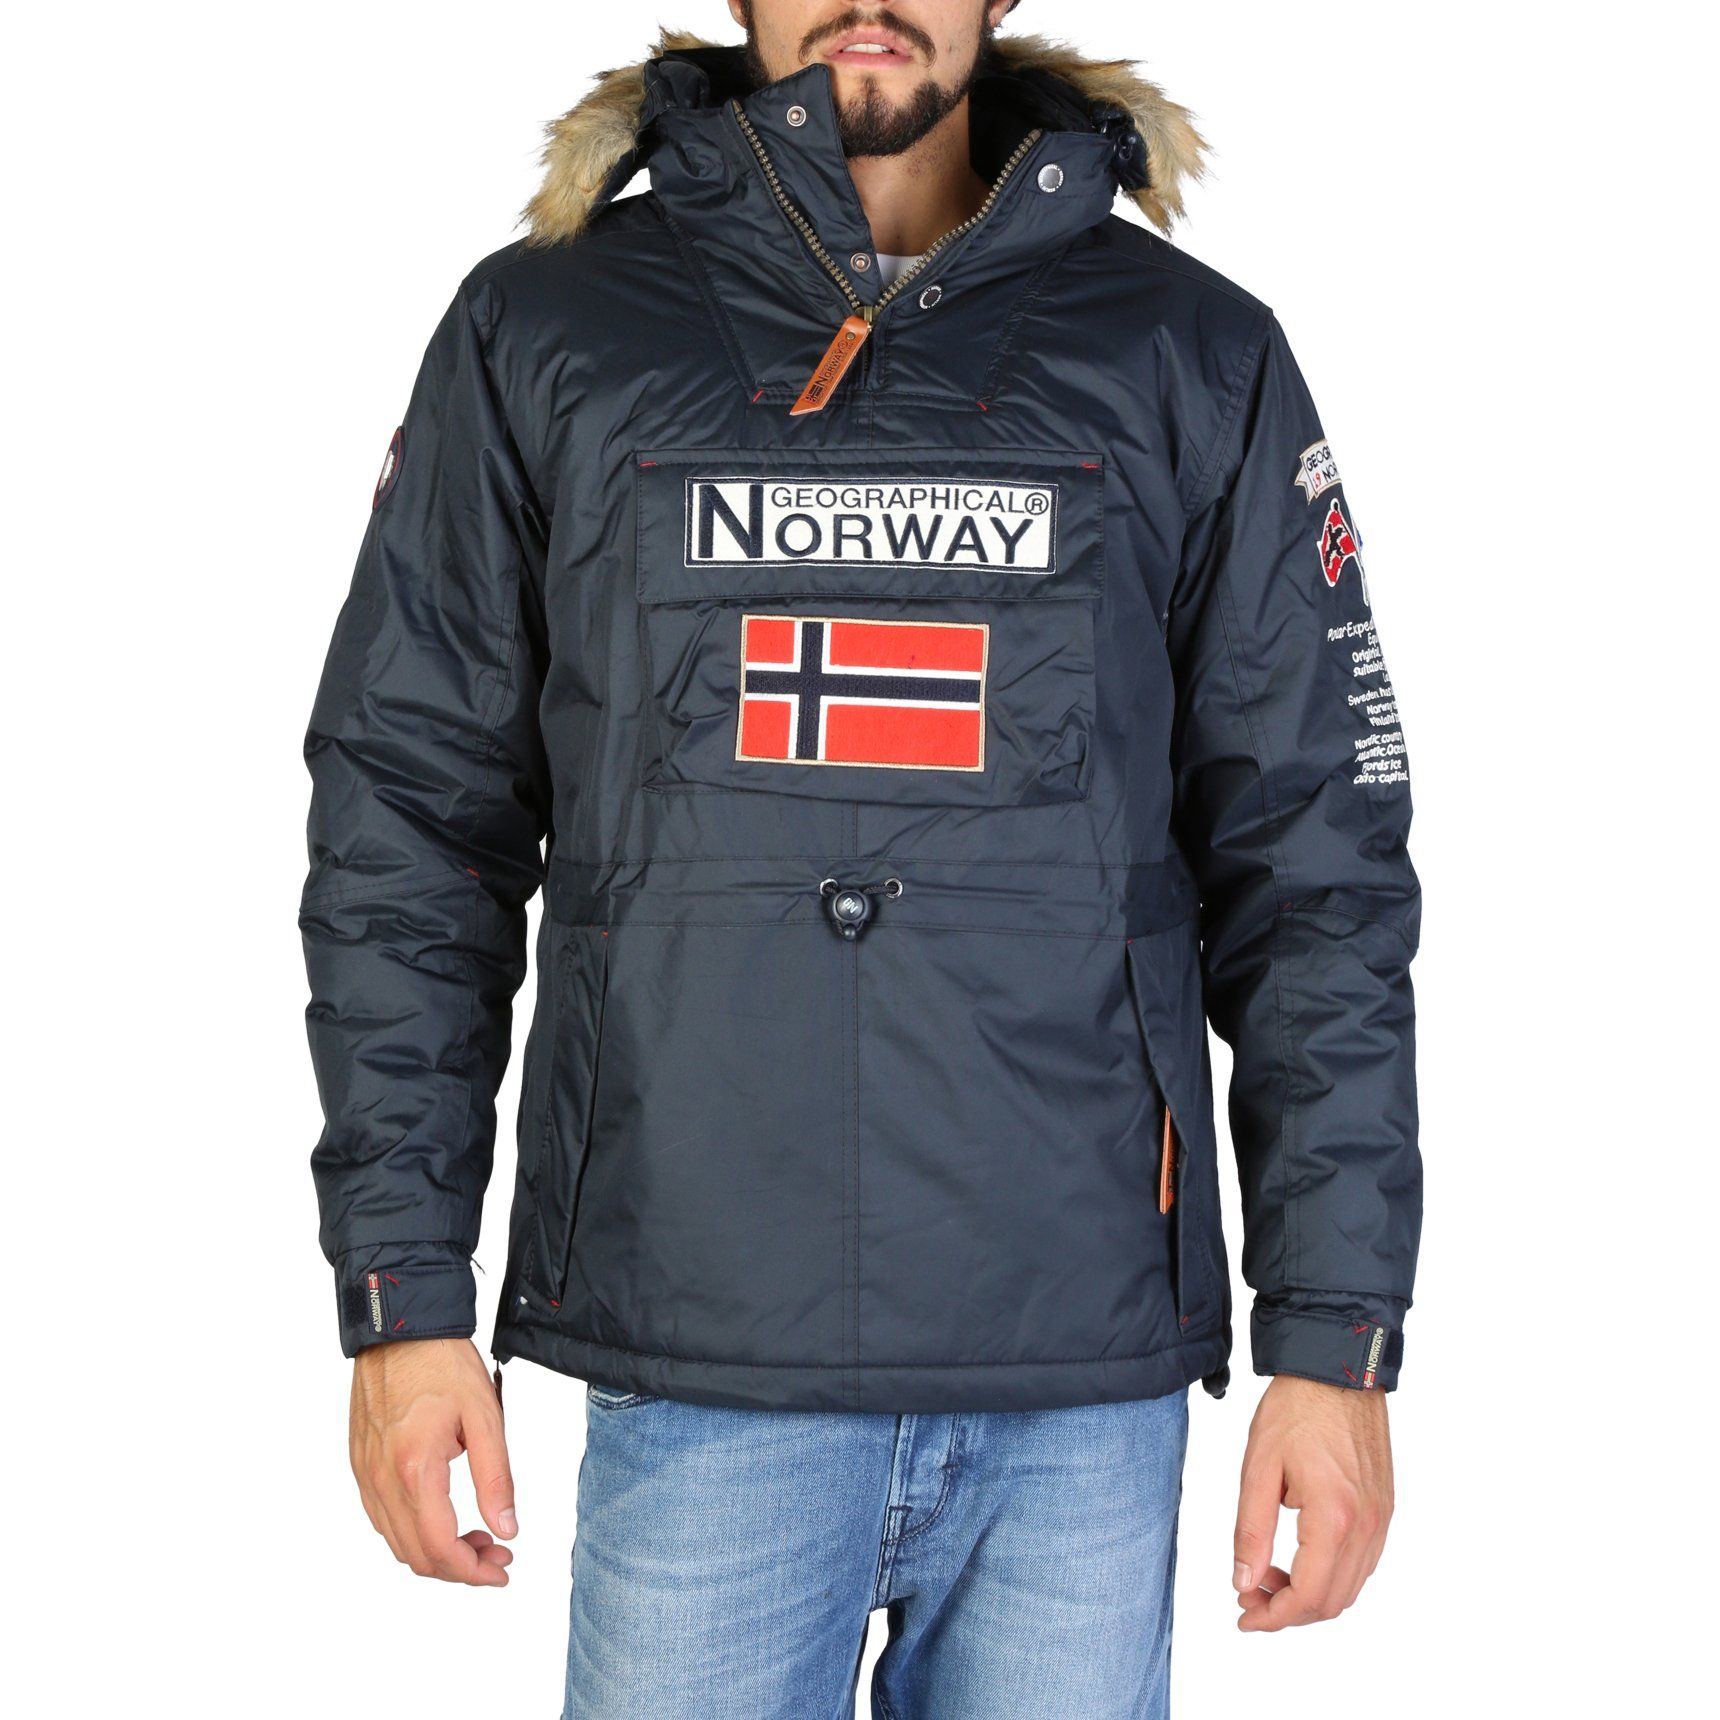 GEOGRAPHICAL NORWAY Quilted Jacket Men Winter Jacket Navy